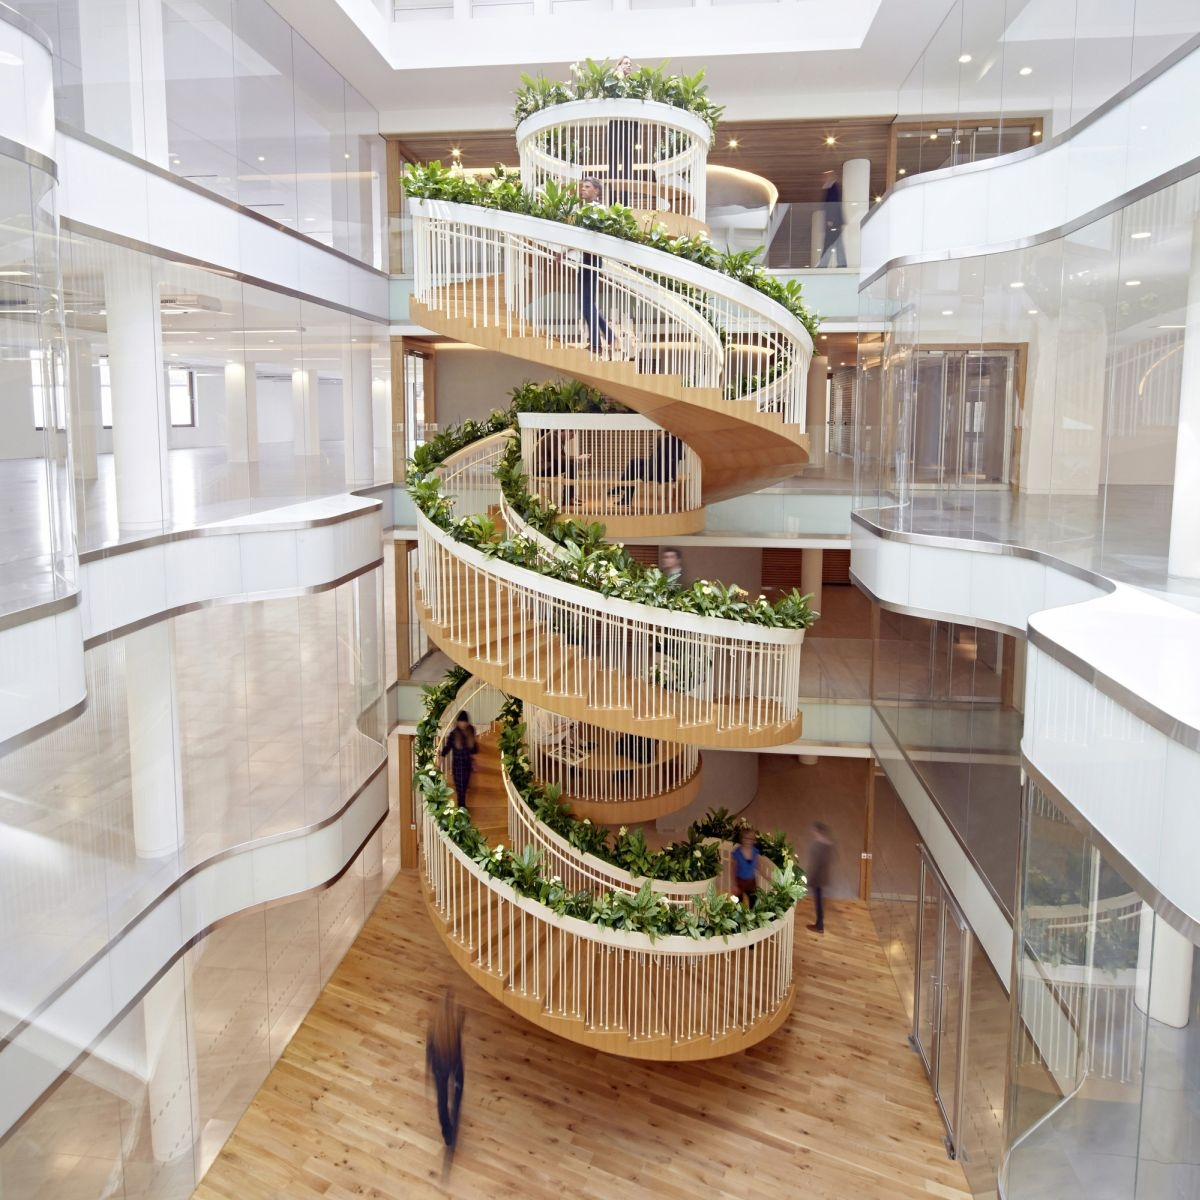 20 Of The Most Beautiful Spiral Staircase Designs Ever | Building A Spiral Staircase | Wood | Playground | Design | Rectangular | Attic